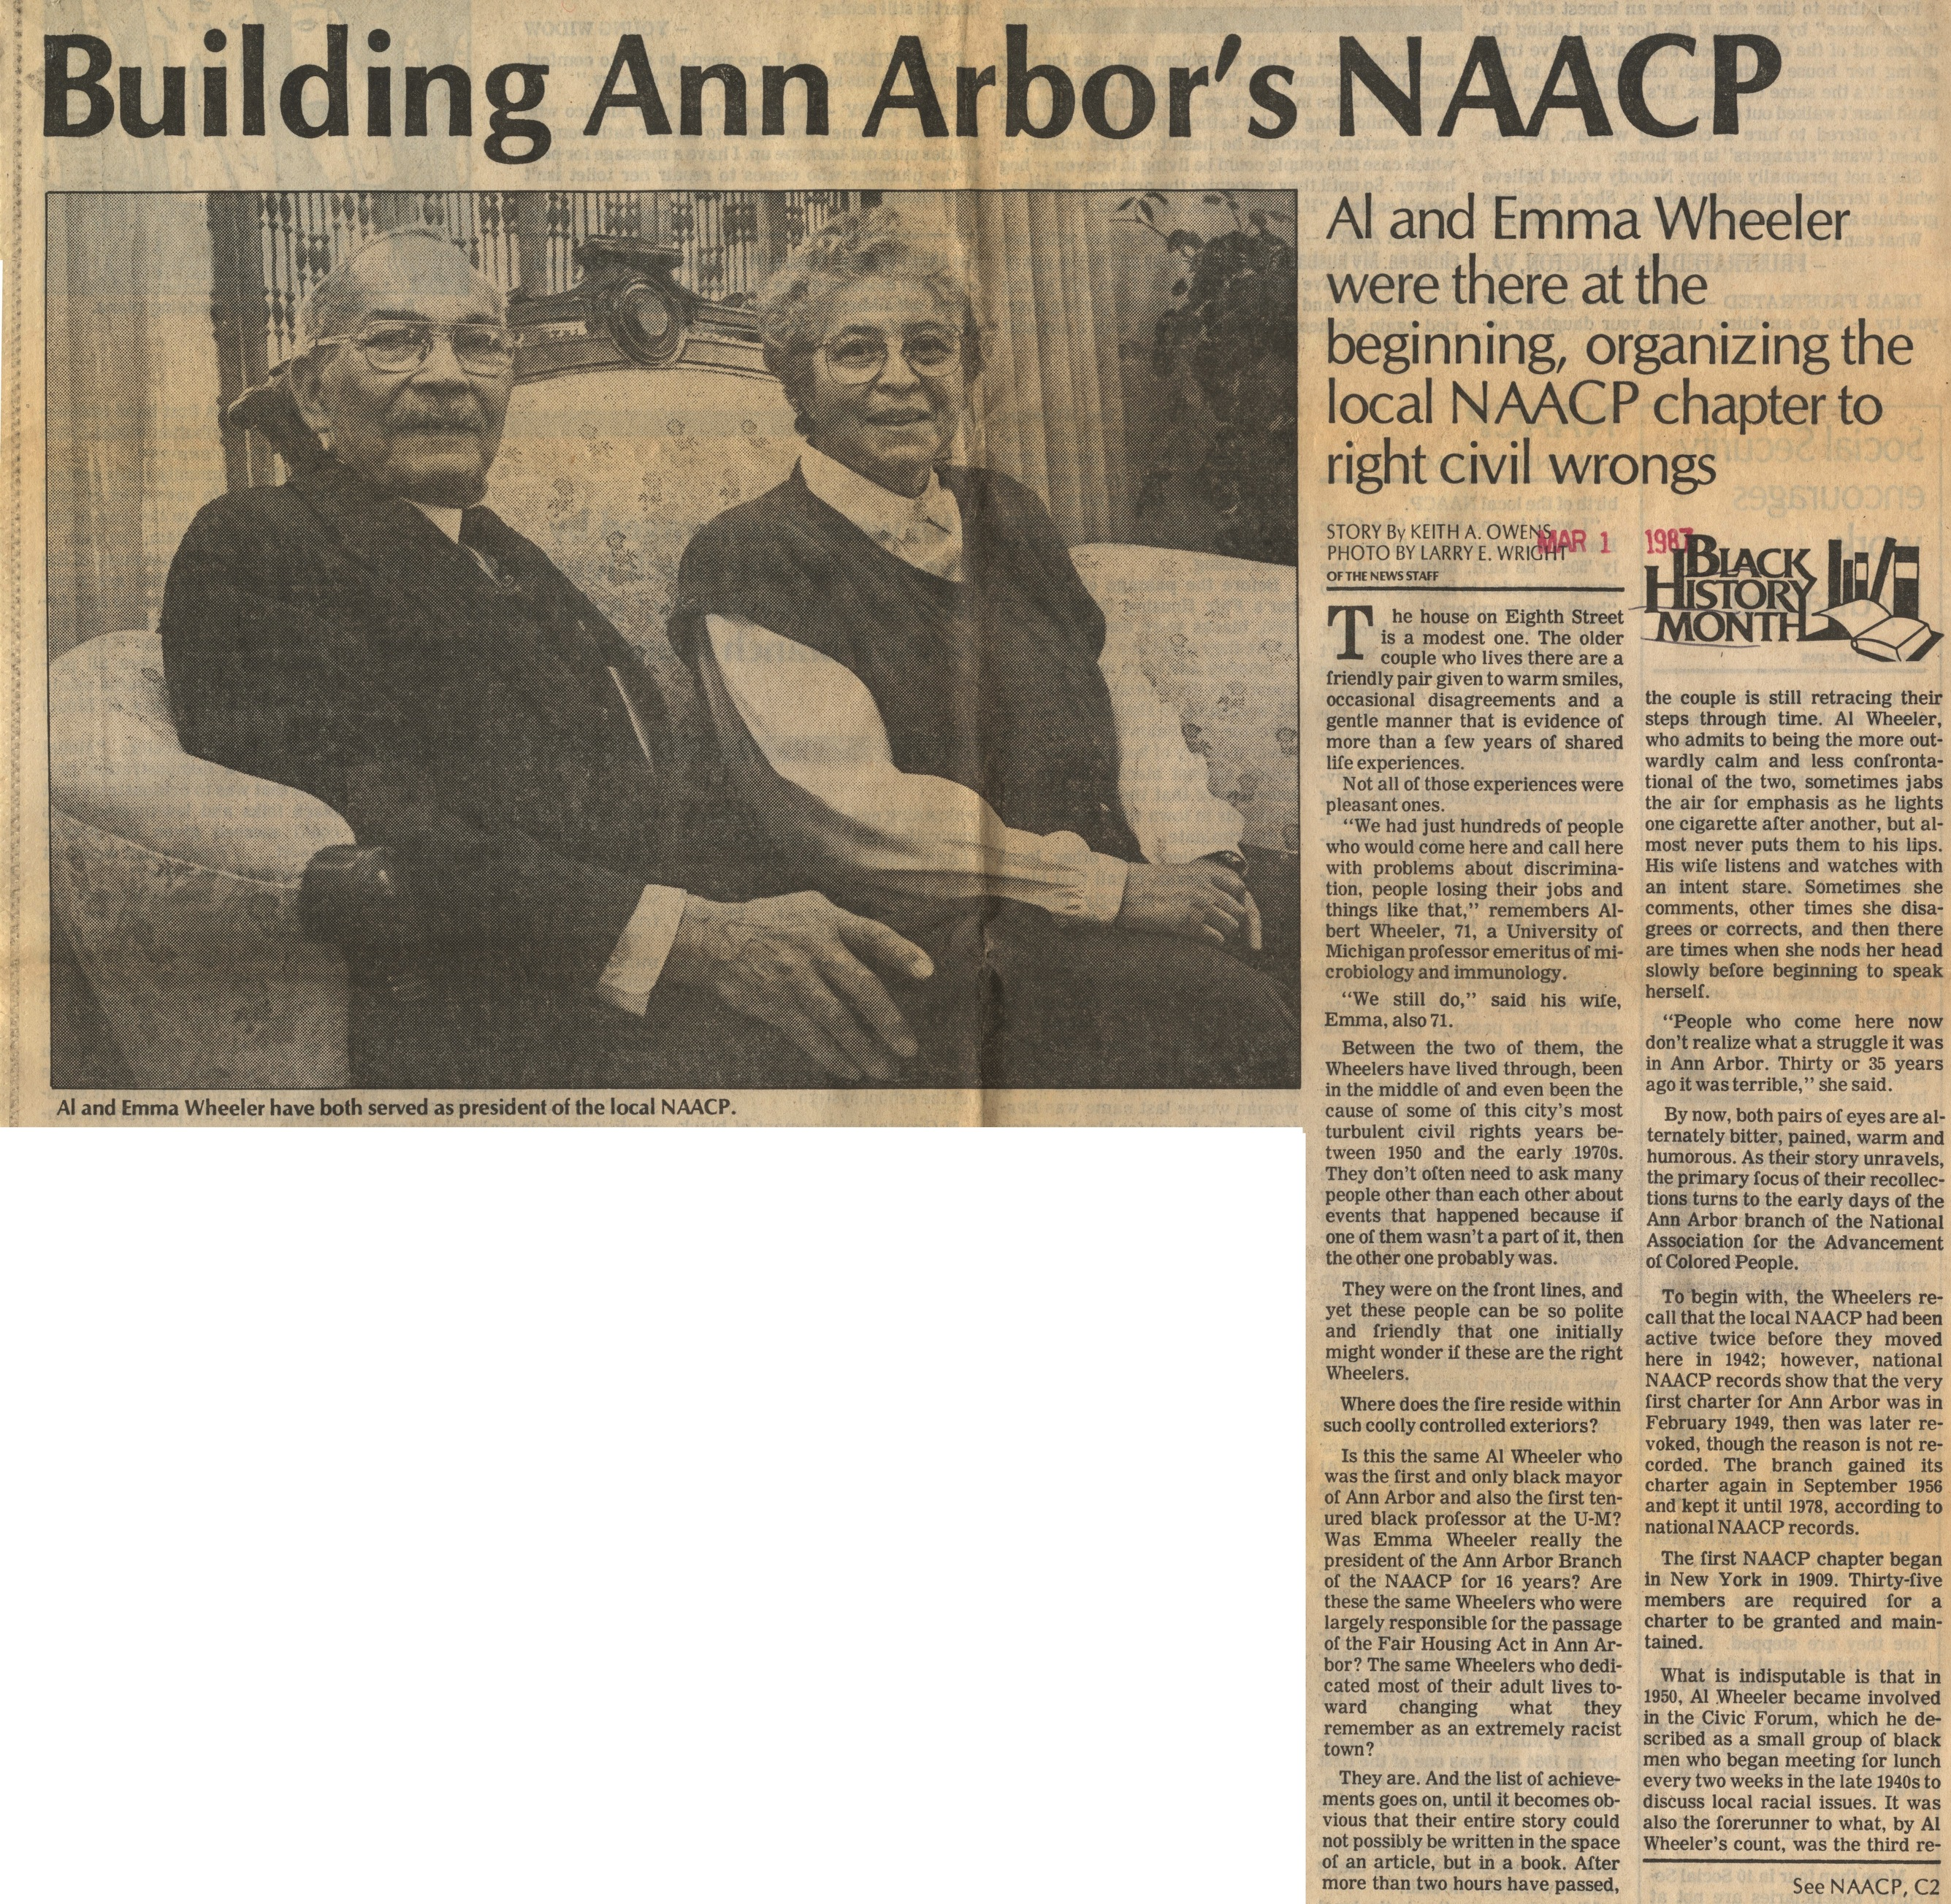 Building Ann Arbor's NAACP image